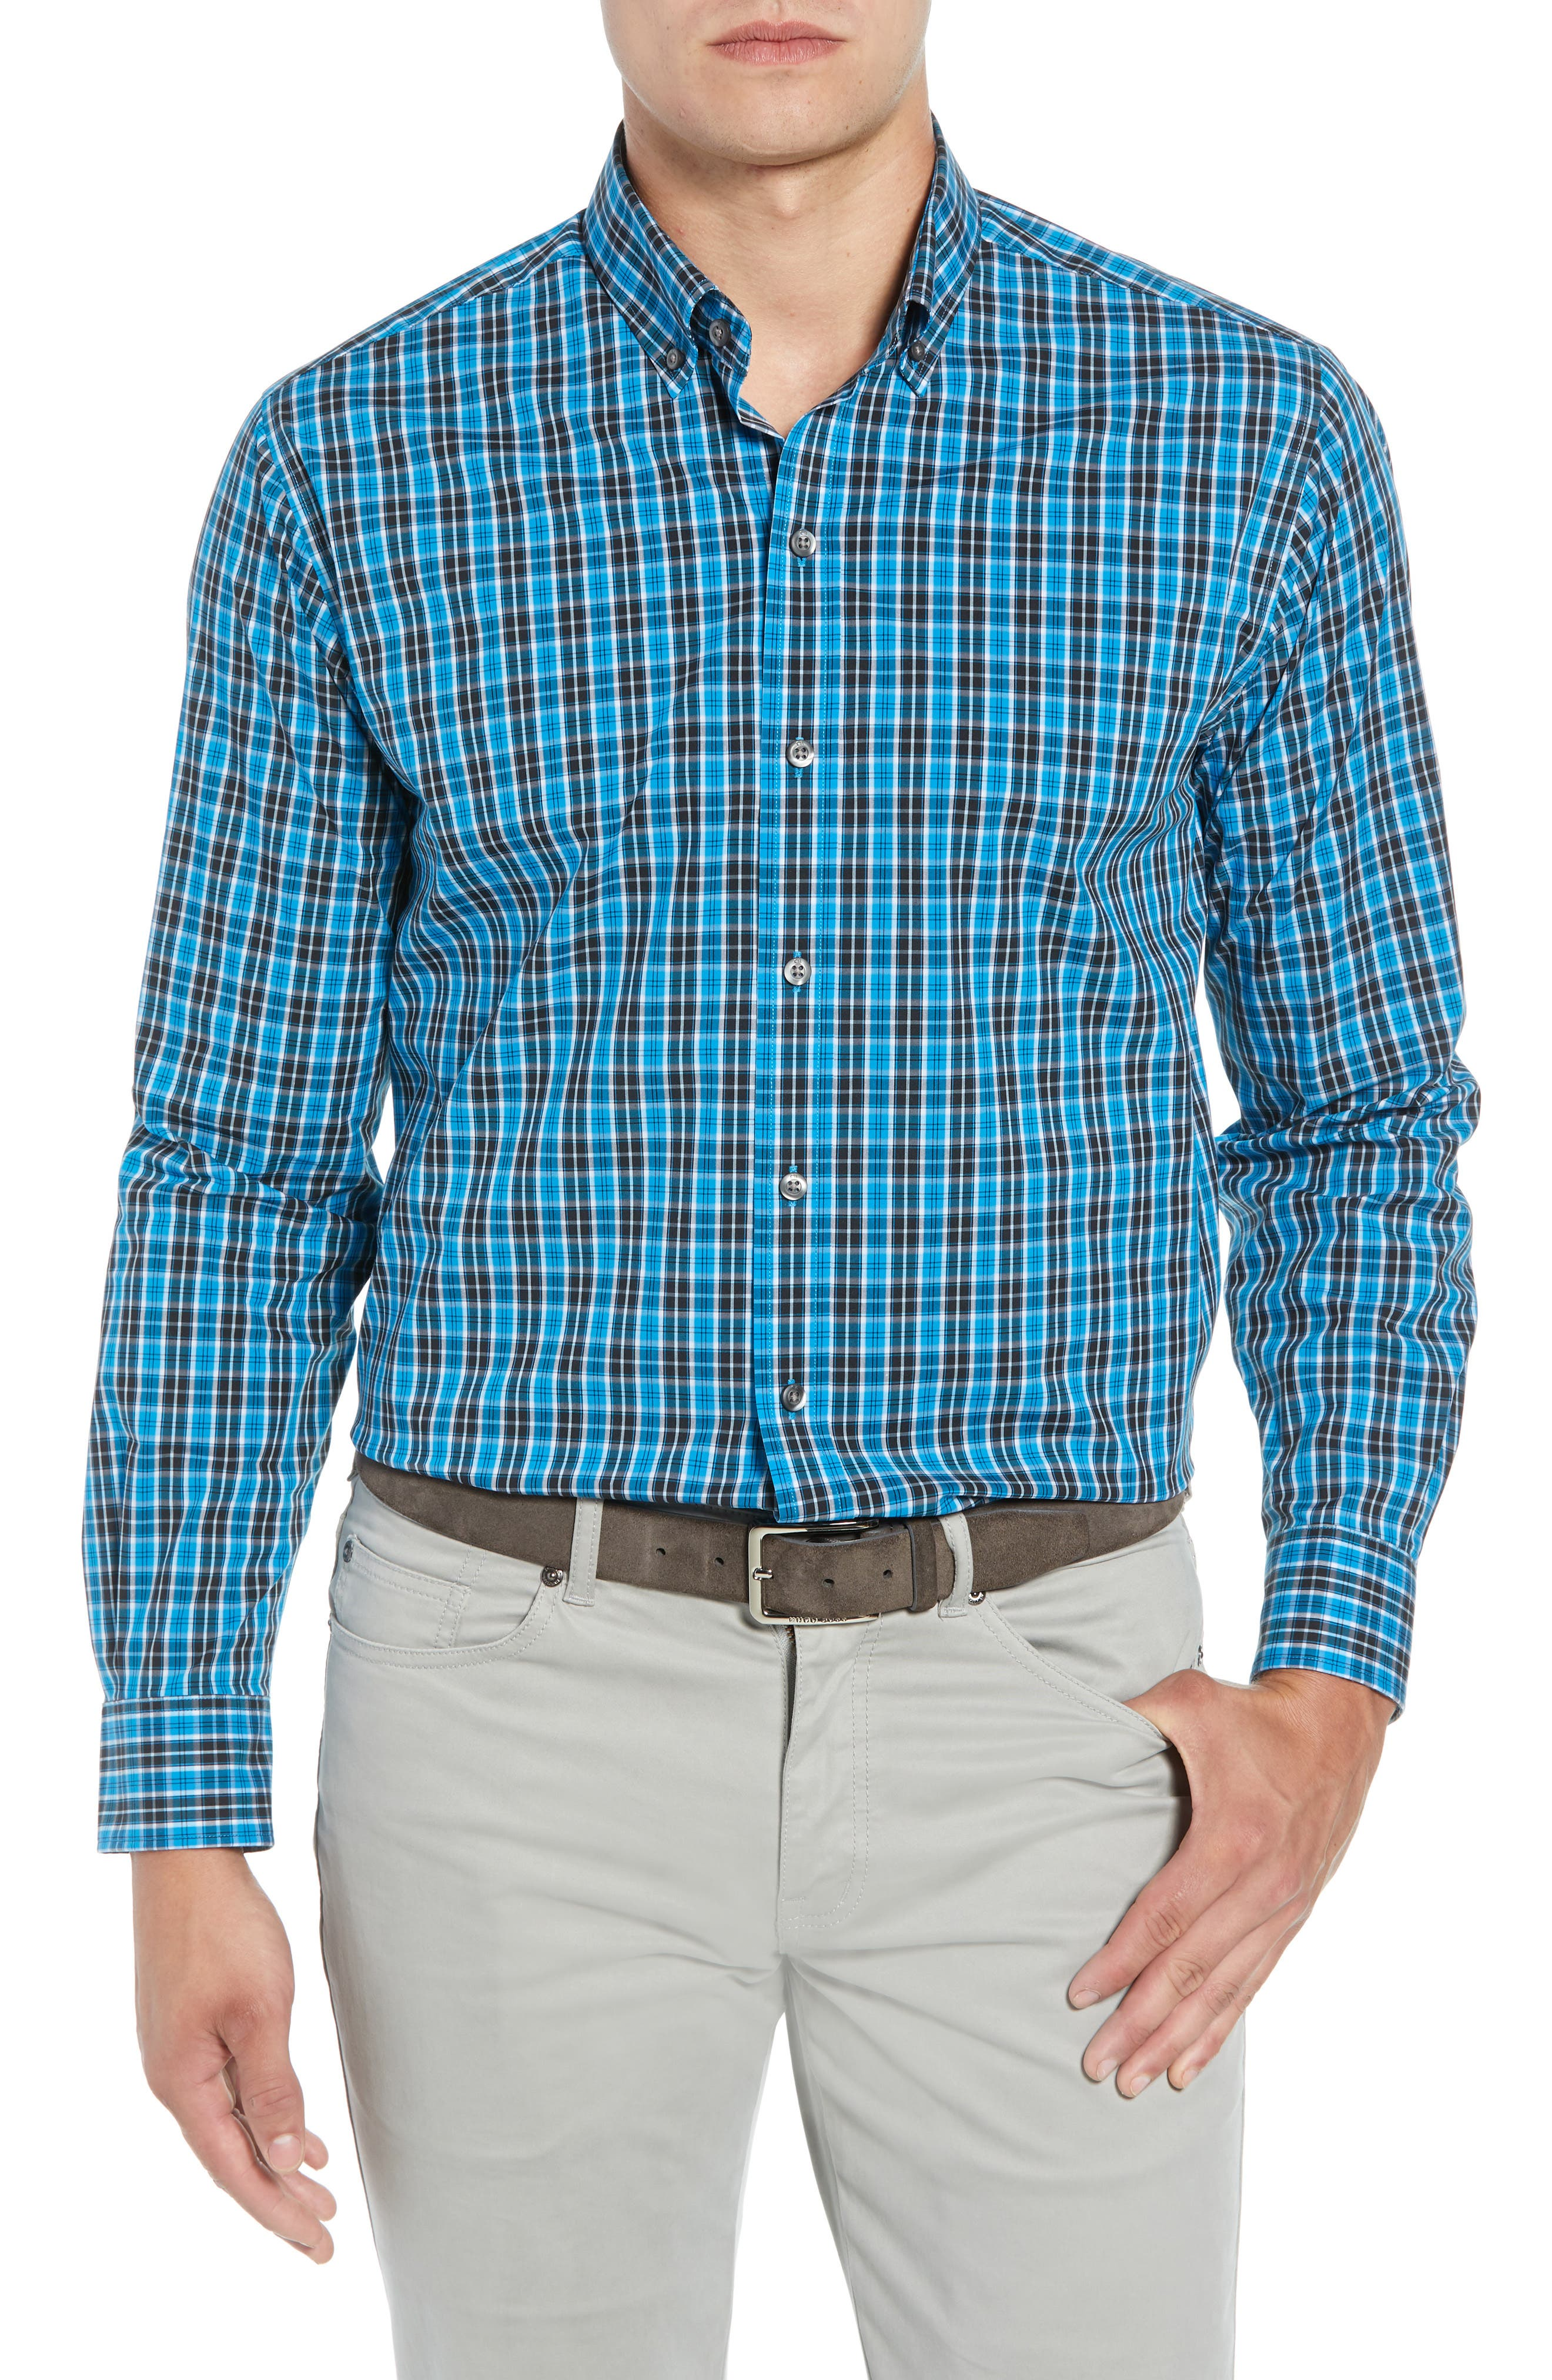 Ronald Regular Fit Plaid Performance Sport Shirt,                         Main,                         color, ORBIT